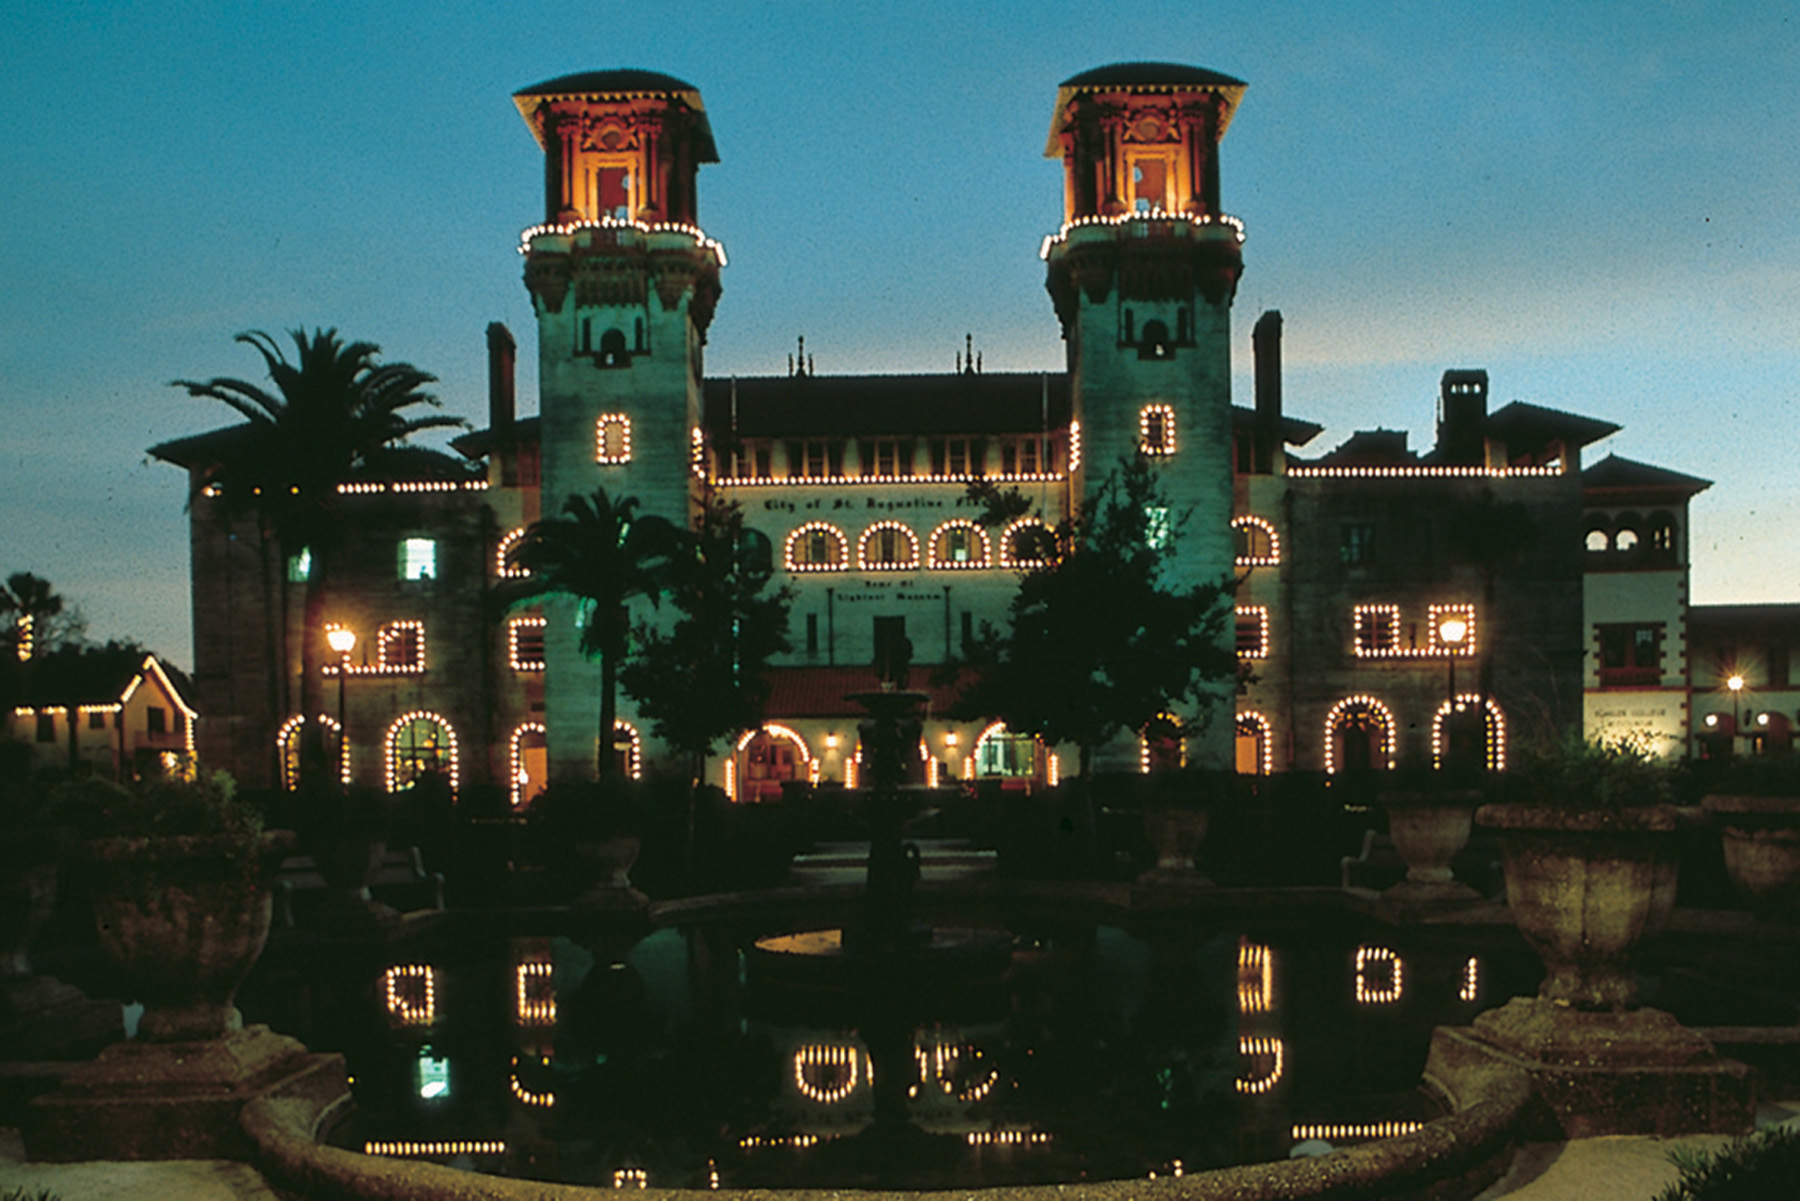 St. Augustine's City Hall is one of many buildings lit up in December and January for the Annual Nights of Lights festival.